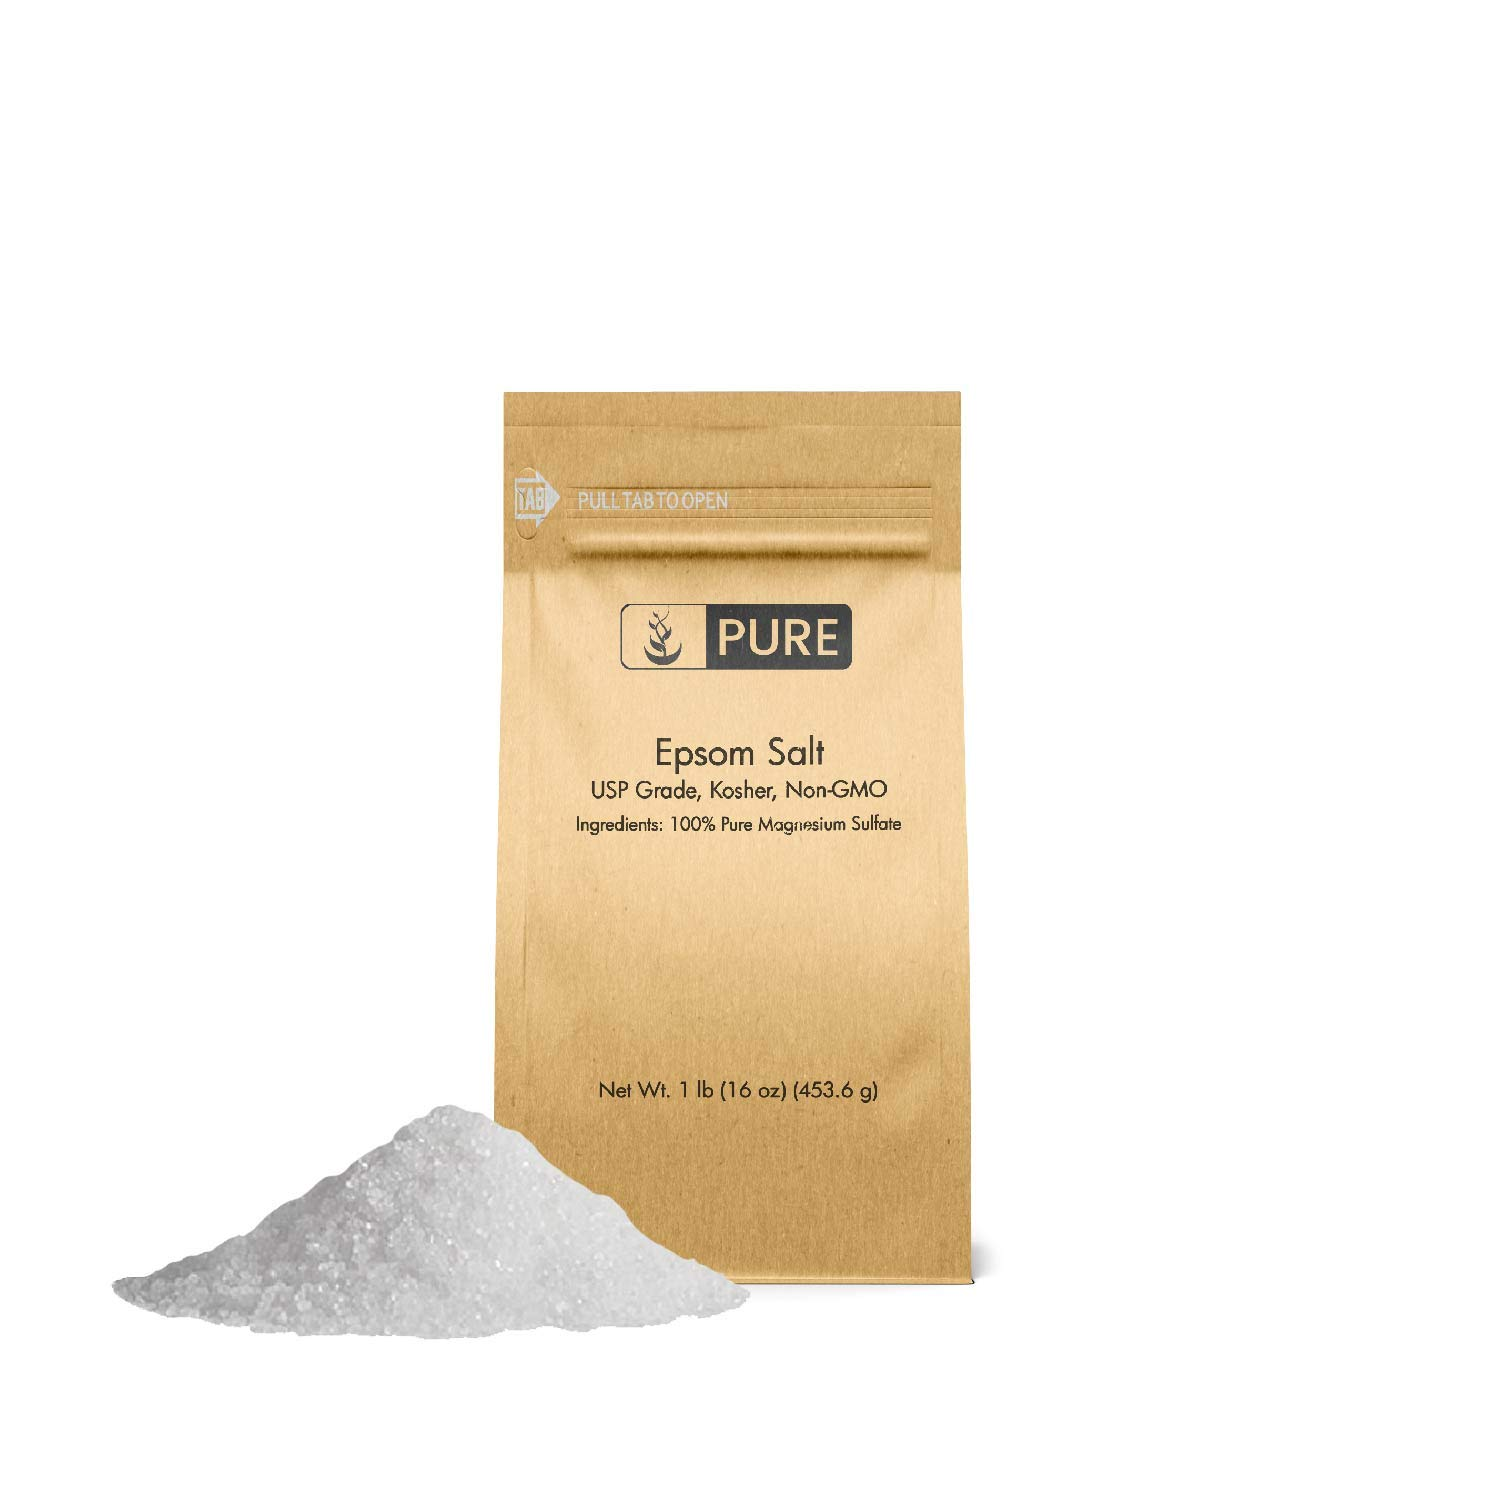 Pure Epsom Salt (1 lb.), Magnesium Sulfate Soaking Solution, All-Natural, Highest Quality & Purity, Top Grade